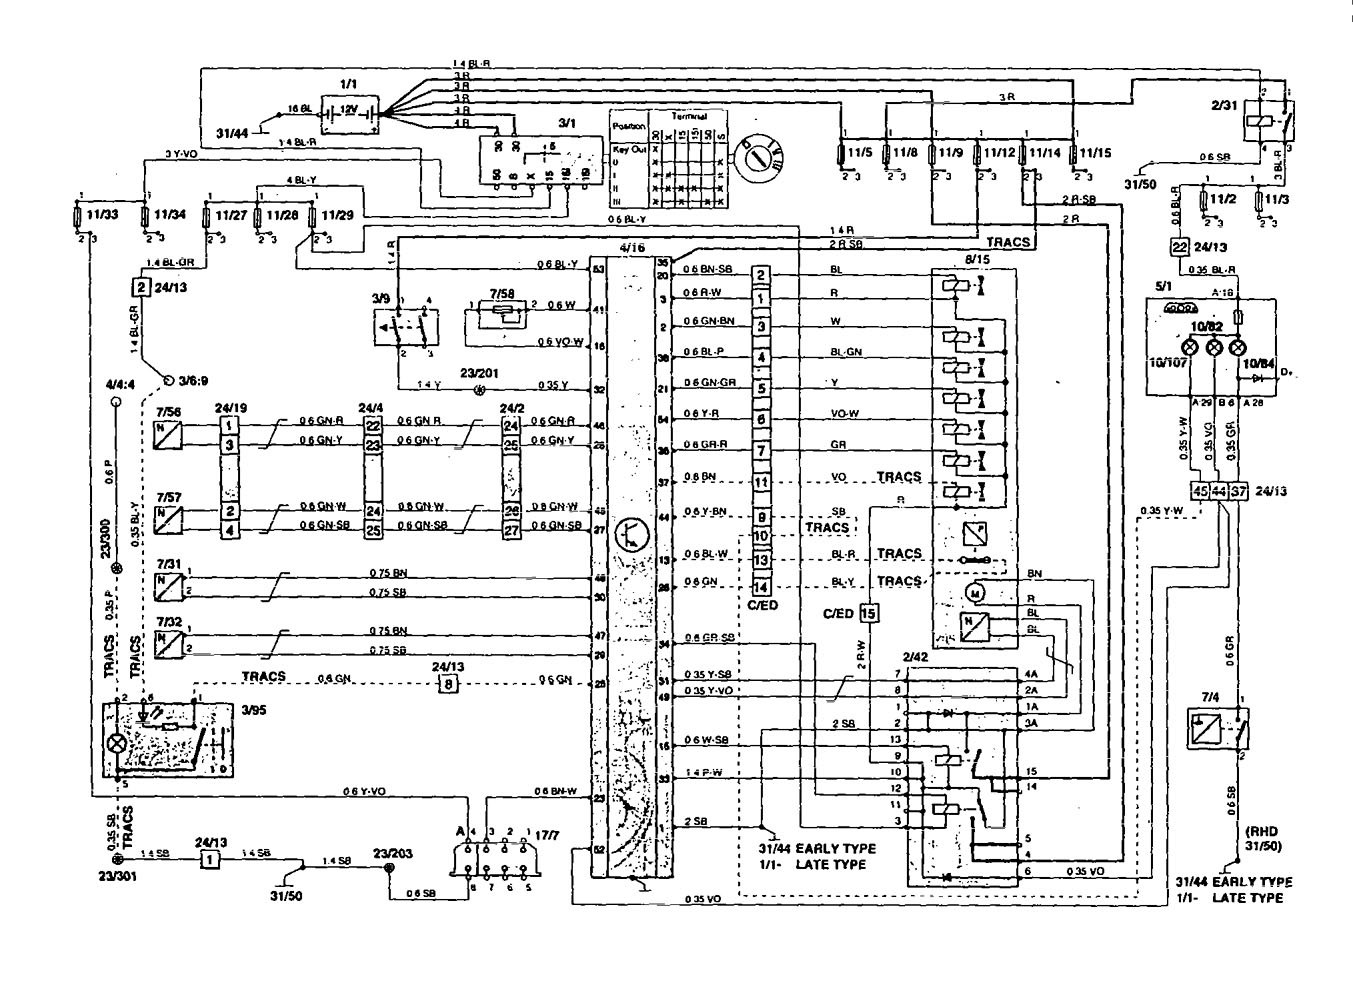 volvo 850 stereo wiring diagram quick start guide of wiring diagram • volvo 850 1995 wiring diagrams traction controls carknowledge 1997 volvo 850 stereo wiring diagram 1999 volvo s70 radio wiring diagram